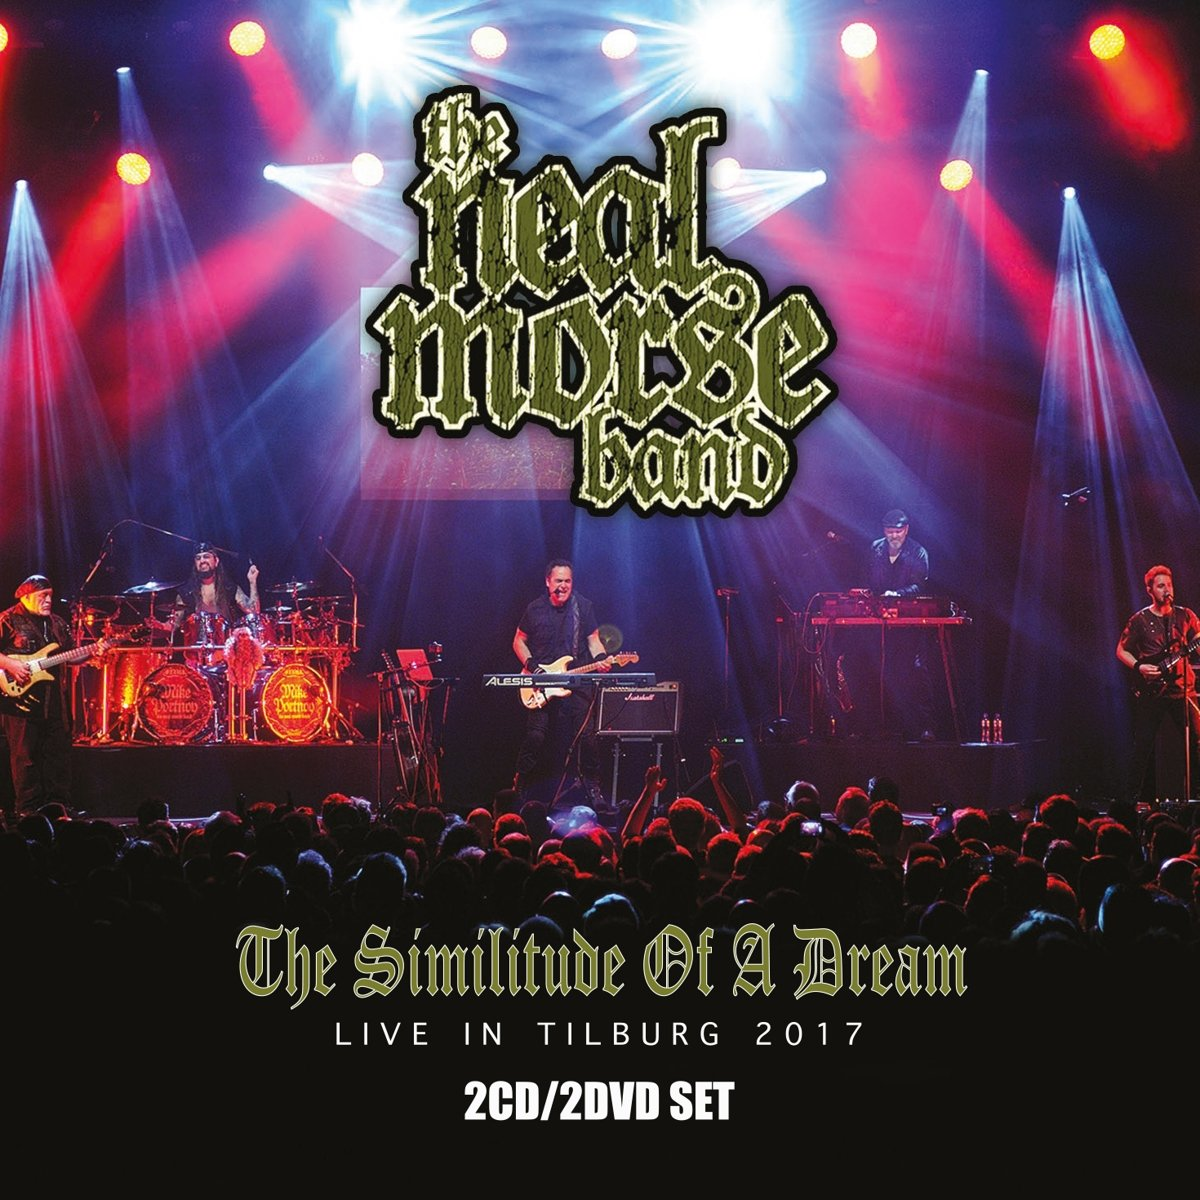 DVD : THE NEAL MORSE BAND - Similitude Of A Dream Live In Tilburg 2017 (3PC)